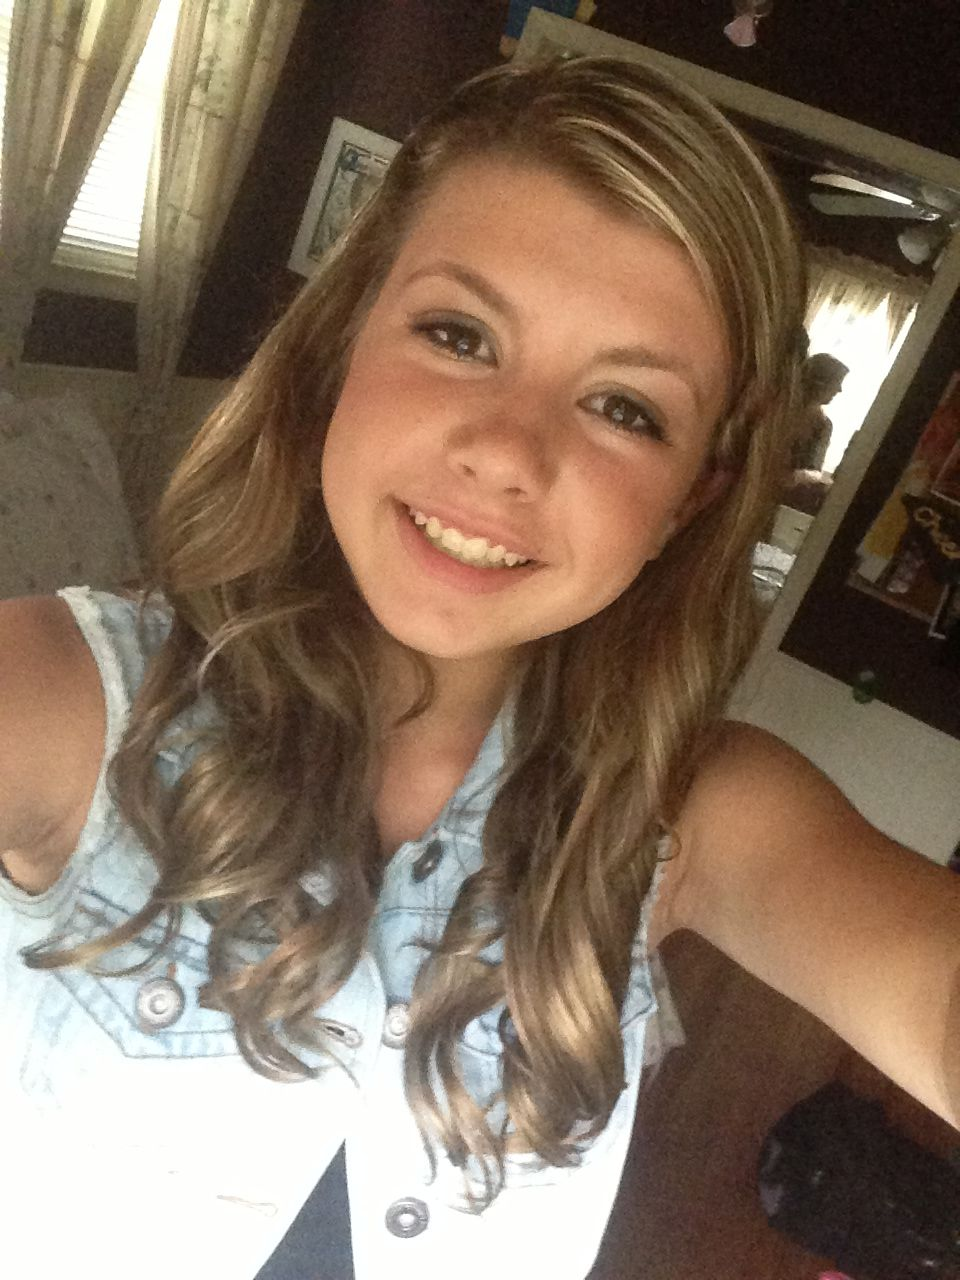 Getting all ready for th grade dance no filter my beautiful baby